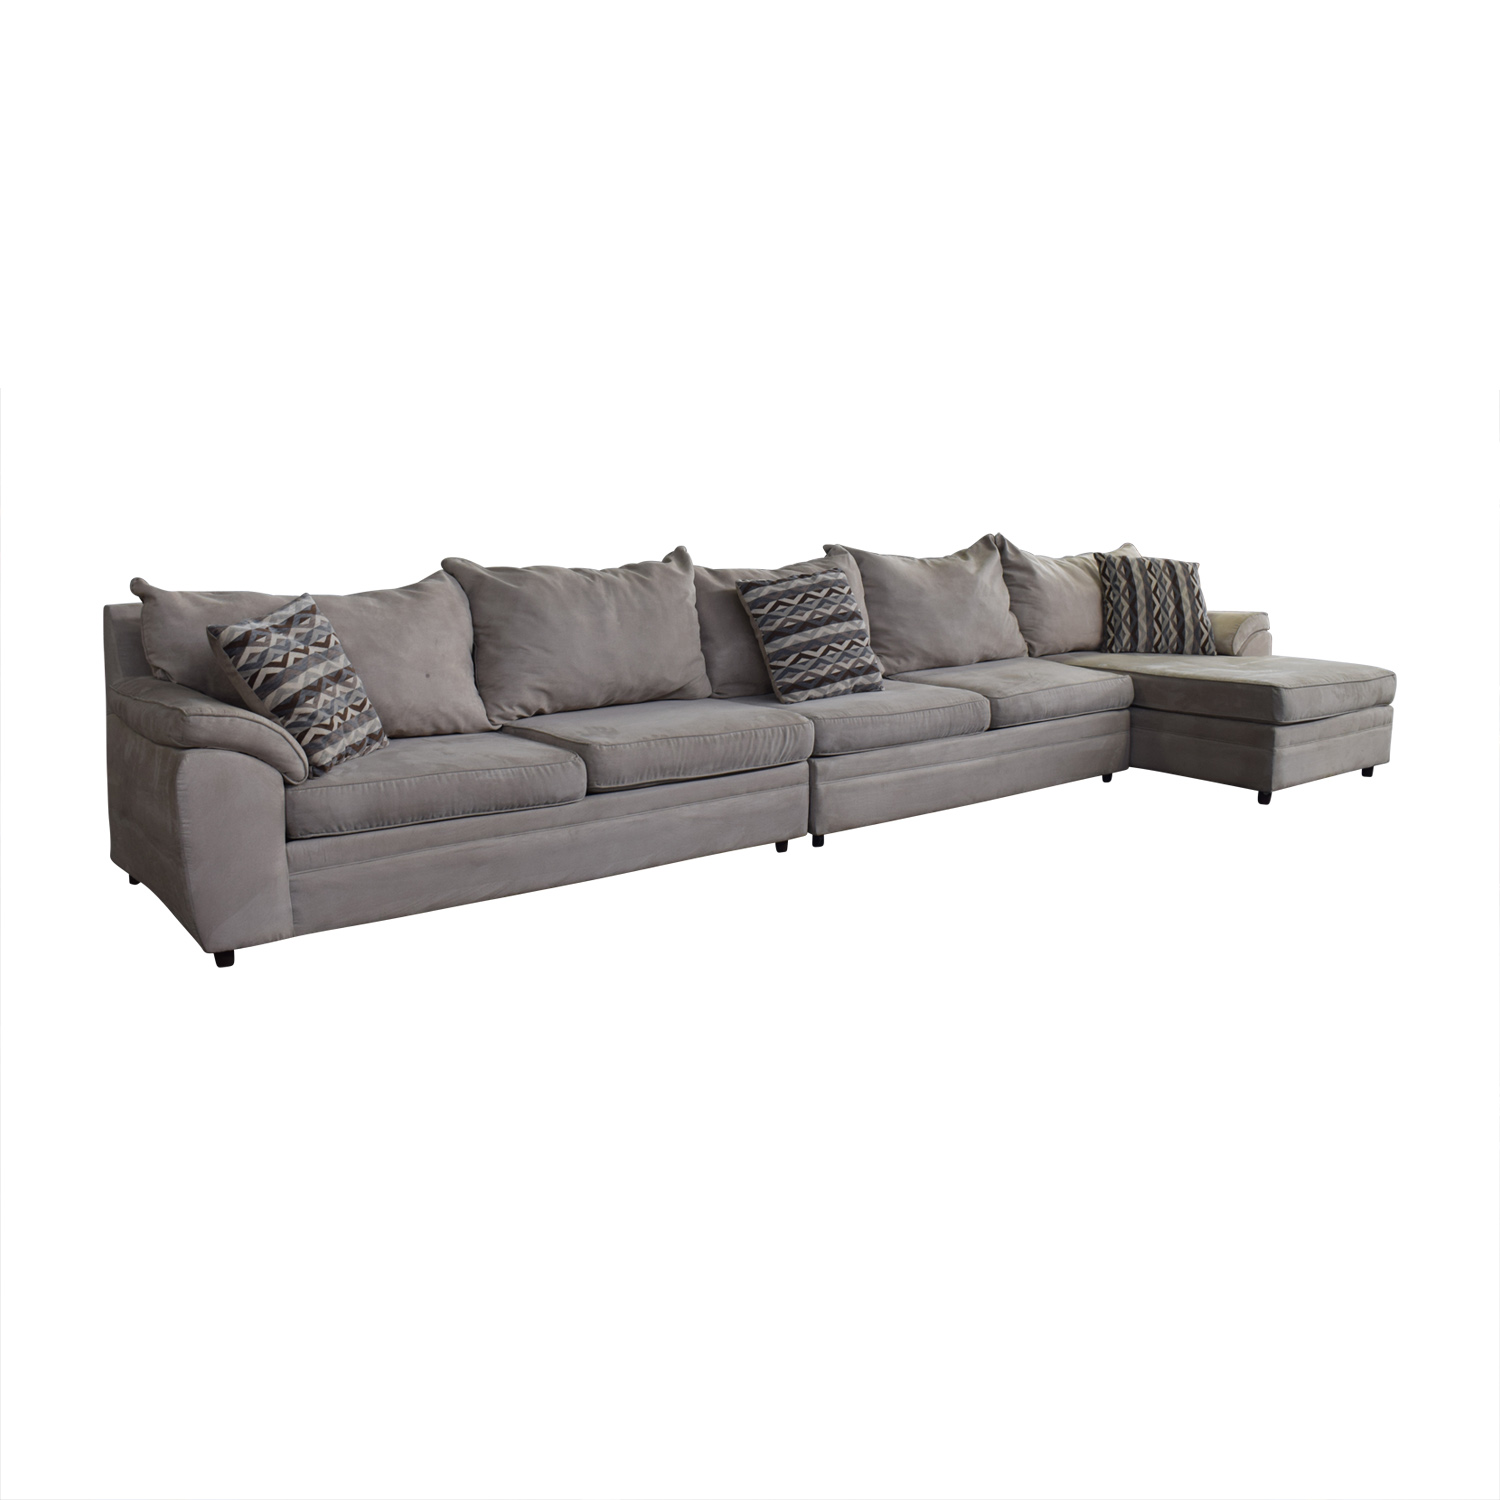 Chaises Discount 73 Off Bob S Discount Furniture Bob S Discount Furniture Beige Microfiber Chaise Sectional Sofas